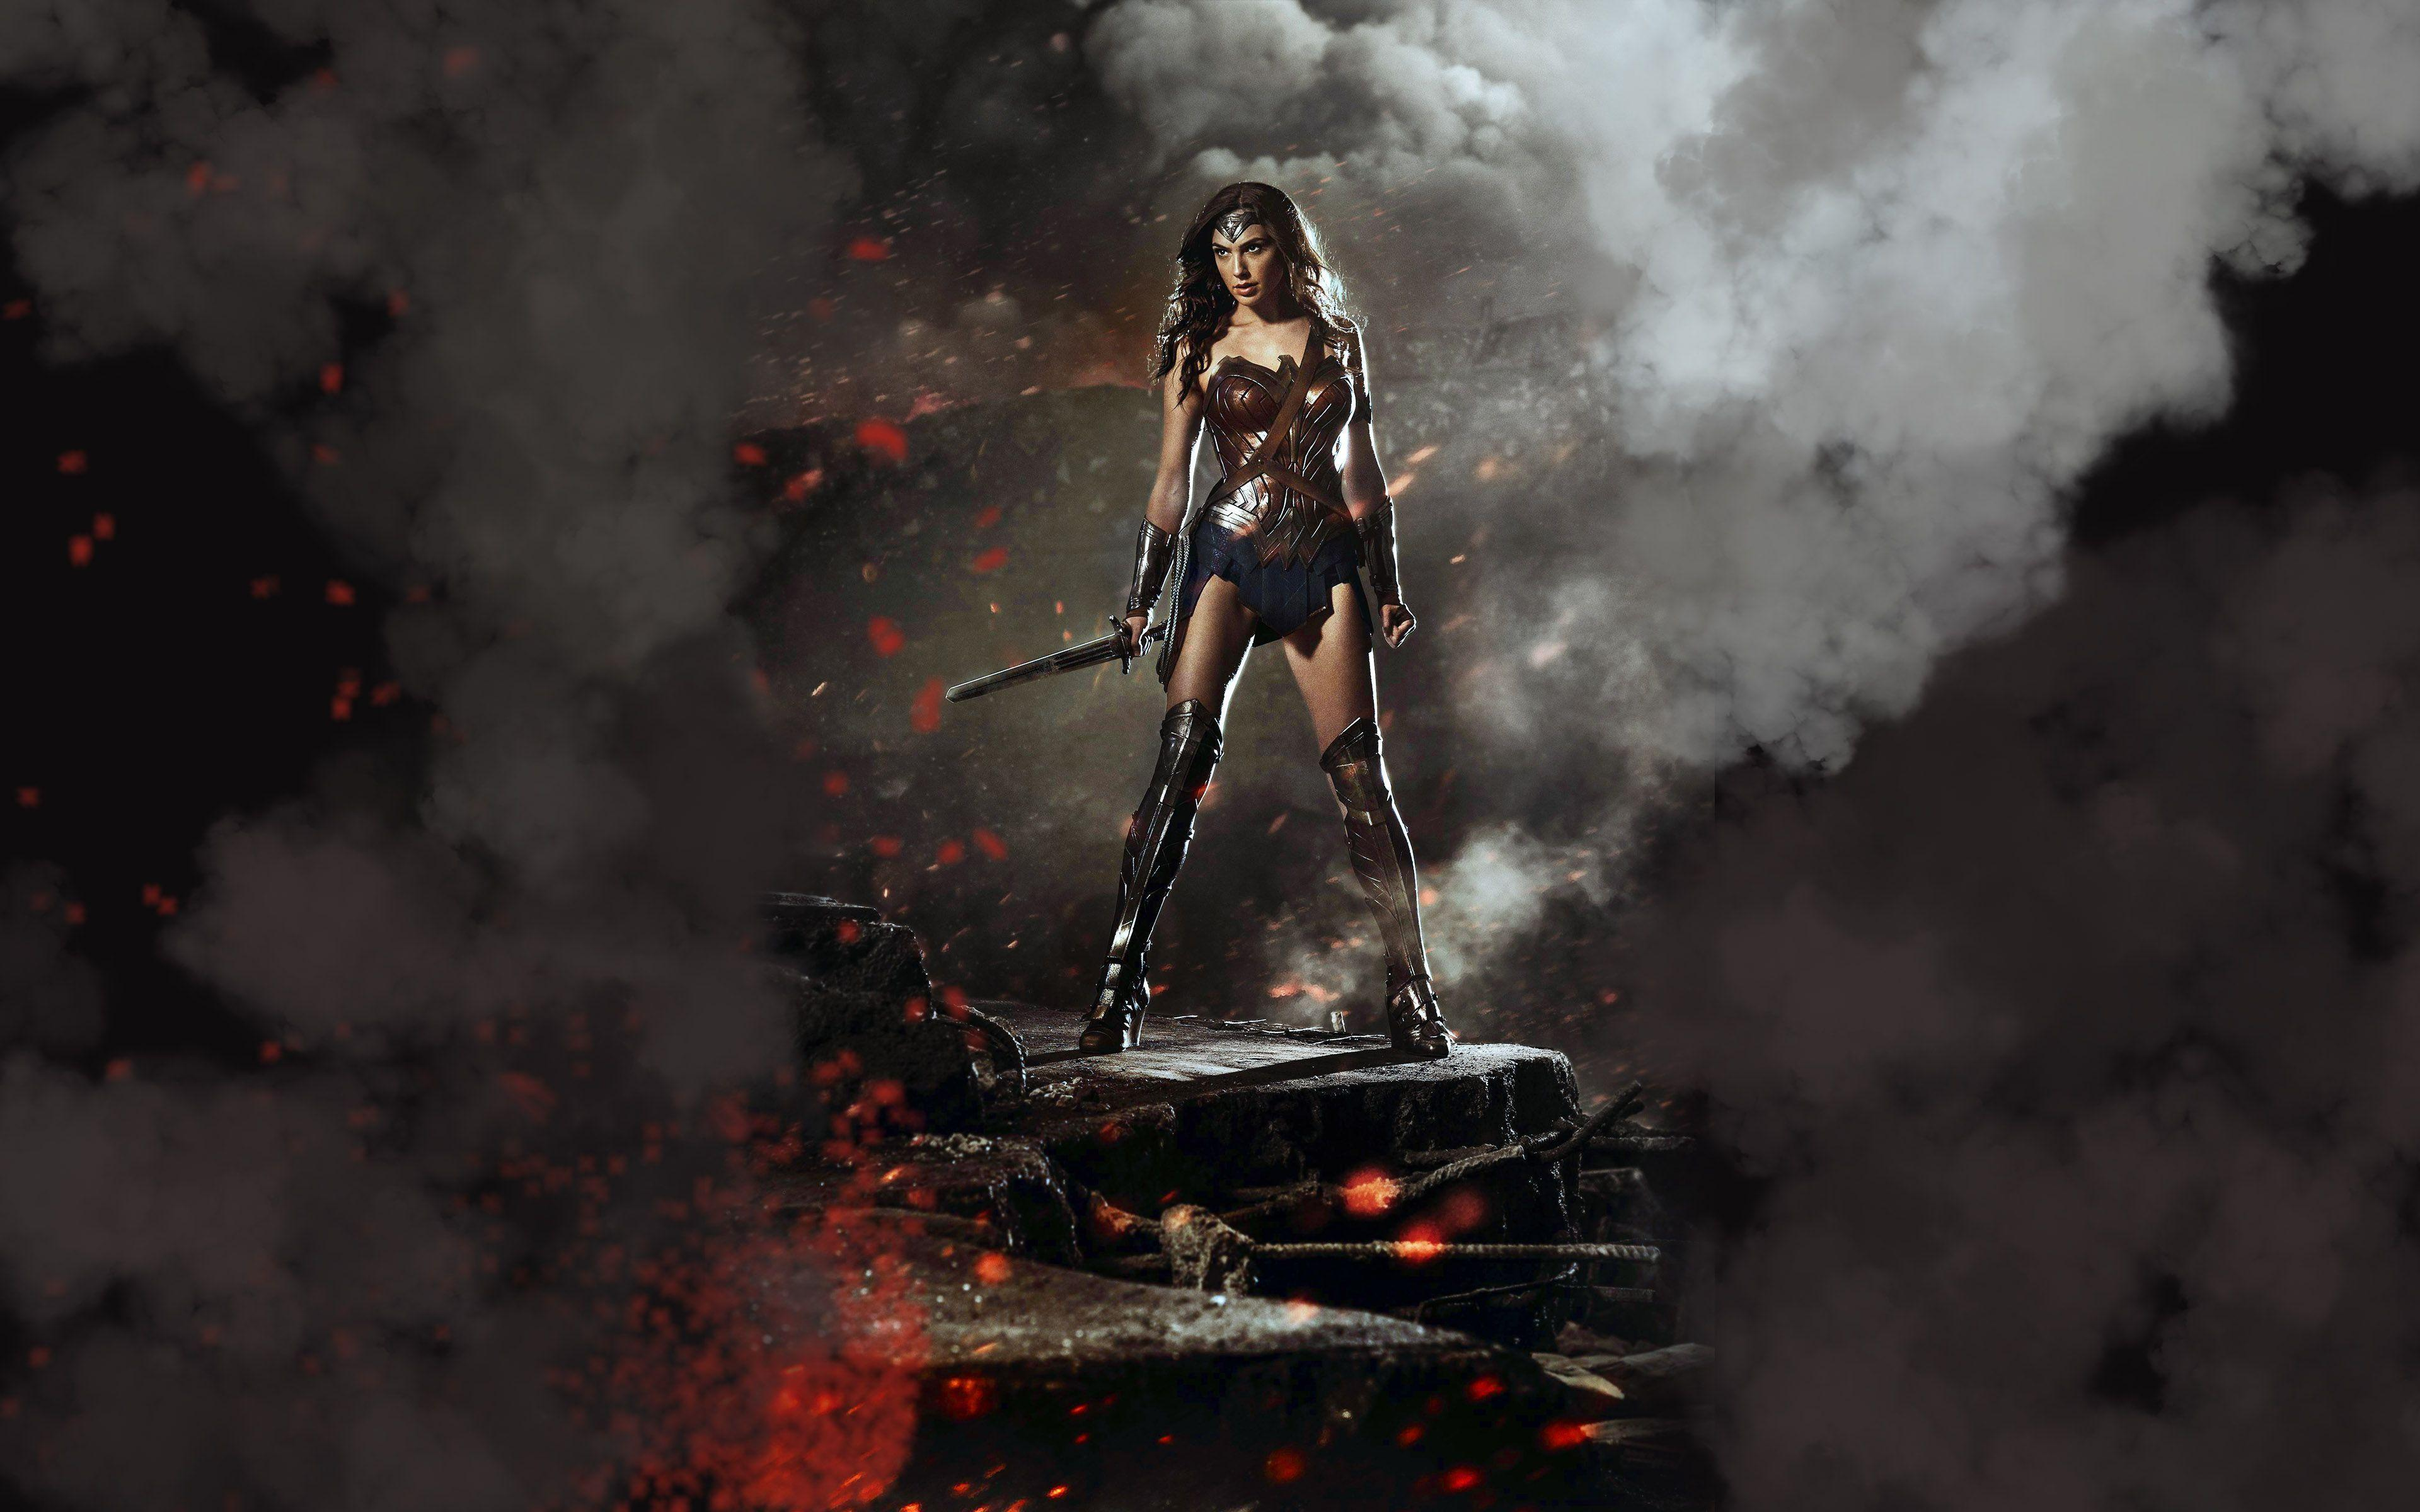 central wallpaper wonder woman - photo #22